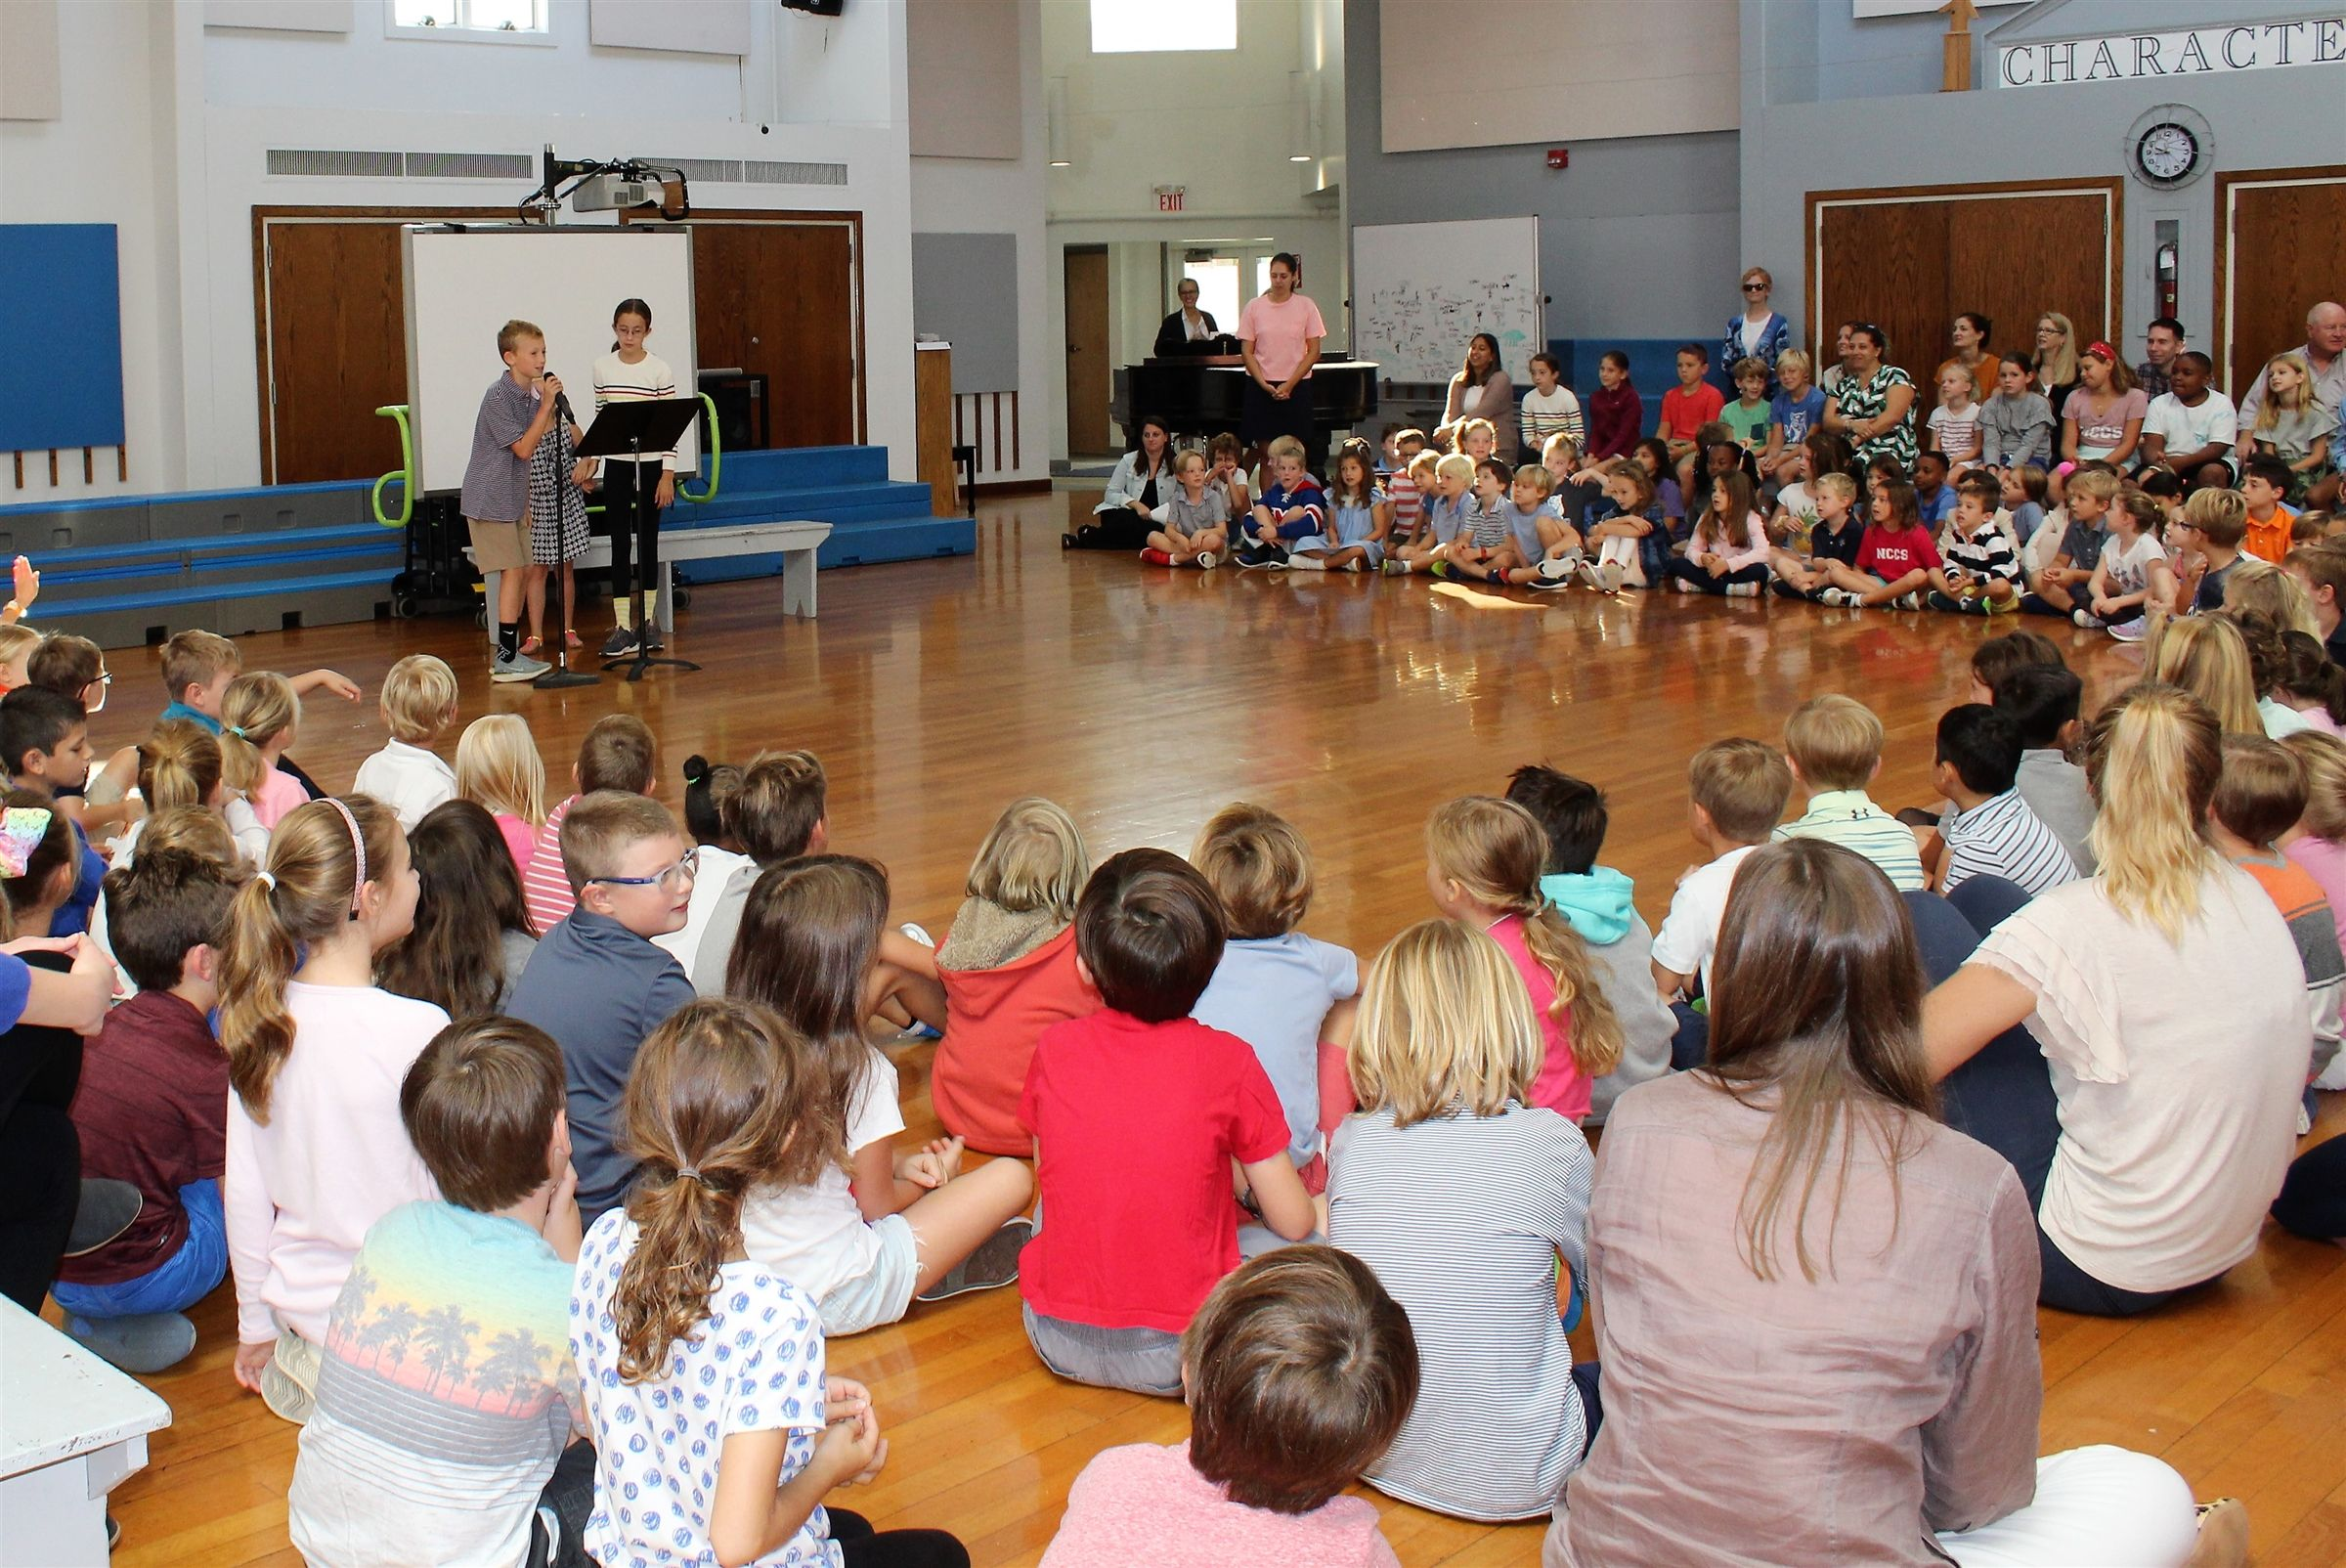 Each week, the Lower School community gathers to sing together, laugh together, and hear from each other during Assembly. This is our version of a family gathering around the dinner table; we give each other our full attention and share our stories. While Lower School Assembly is a joyful part of our week, is it also an invaluable public speaking experience to build competence and confidence.